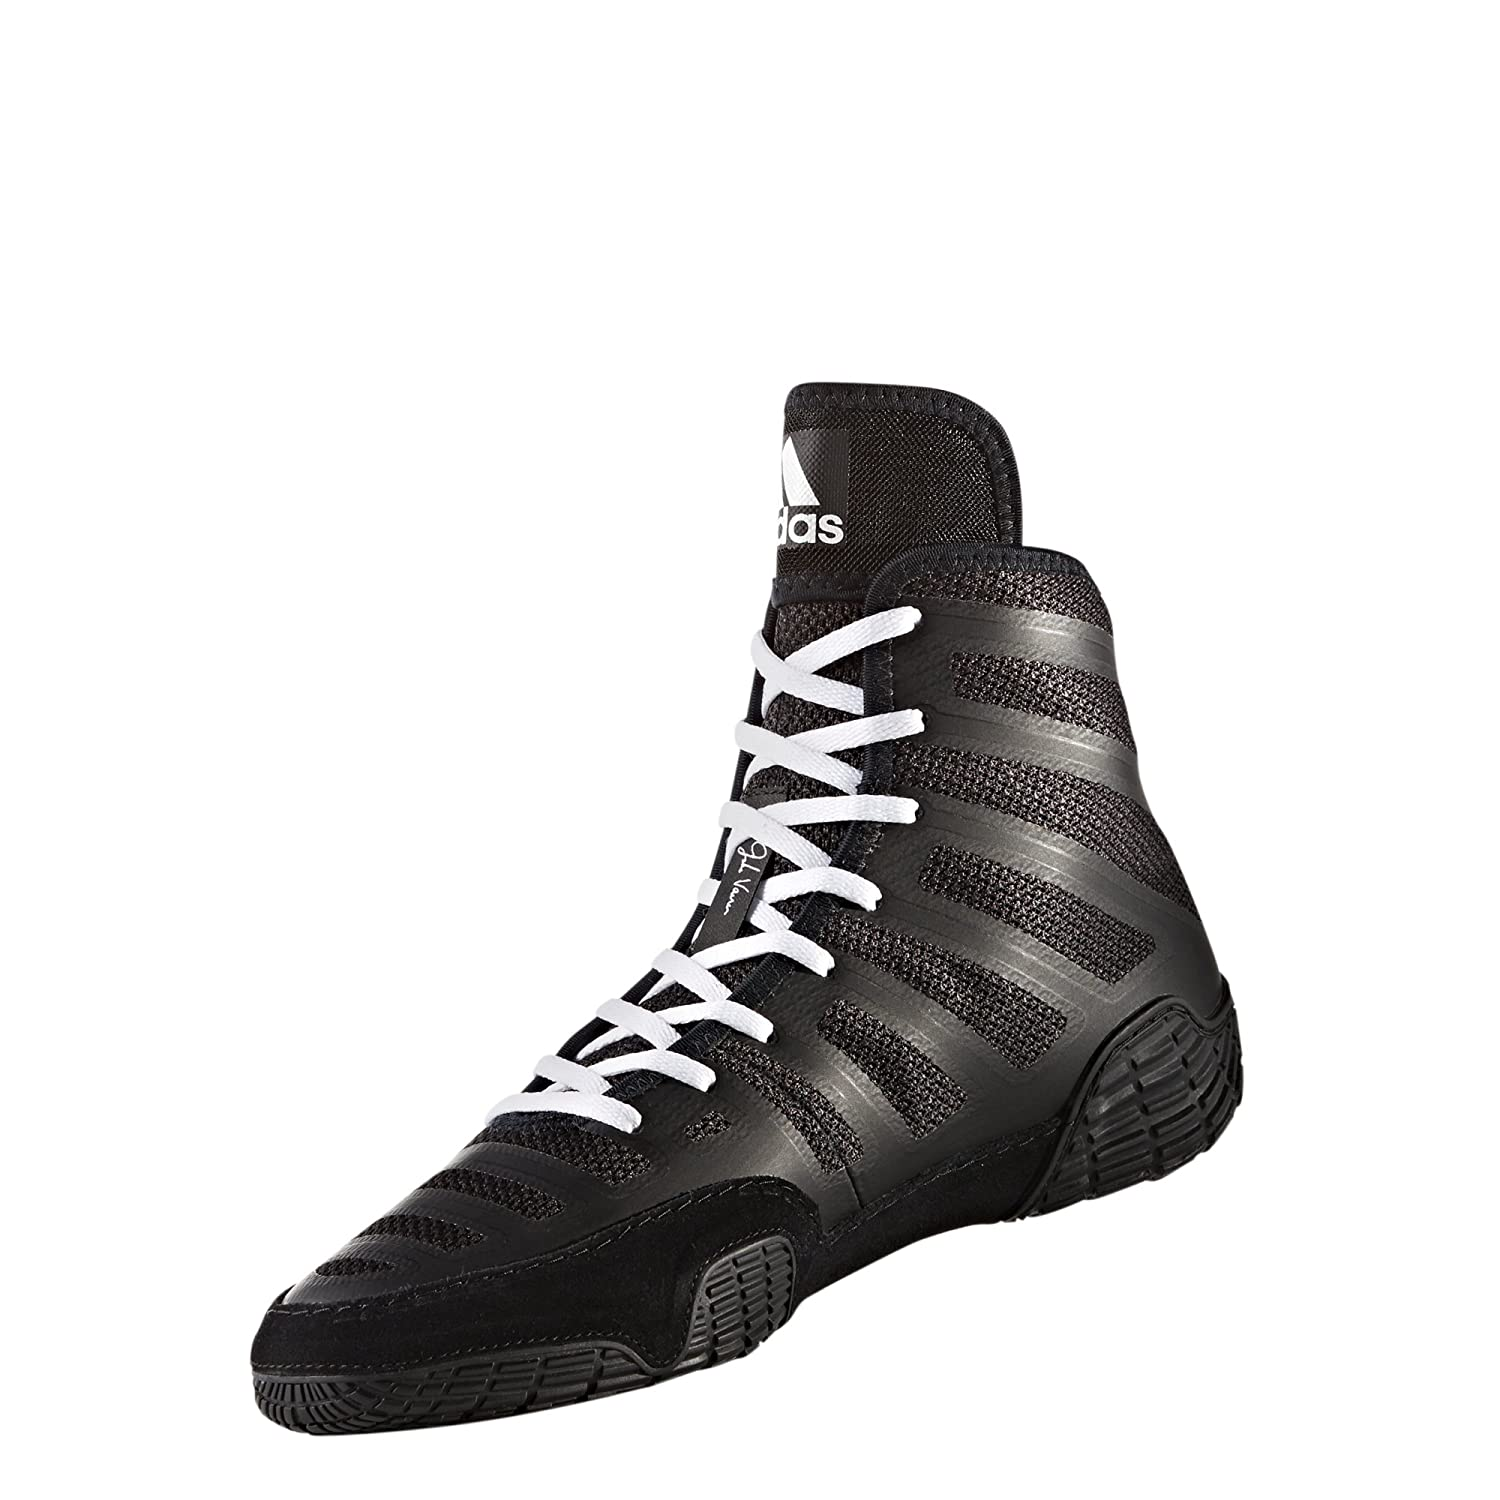 adidas Performance Men's Adizero Wrestling XIV Wrestling Shoes B06Y2SC31Z 4 D(M) US|Black/White/Black